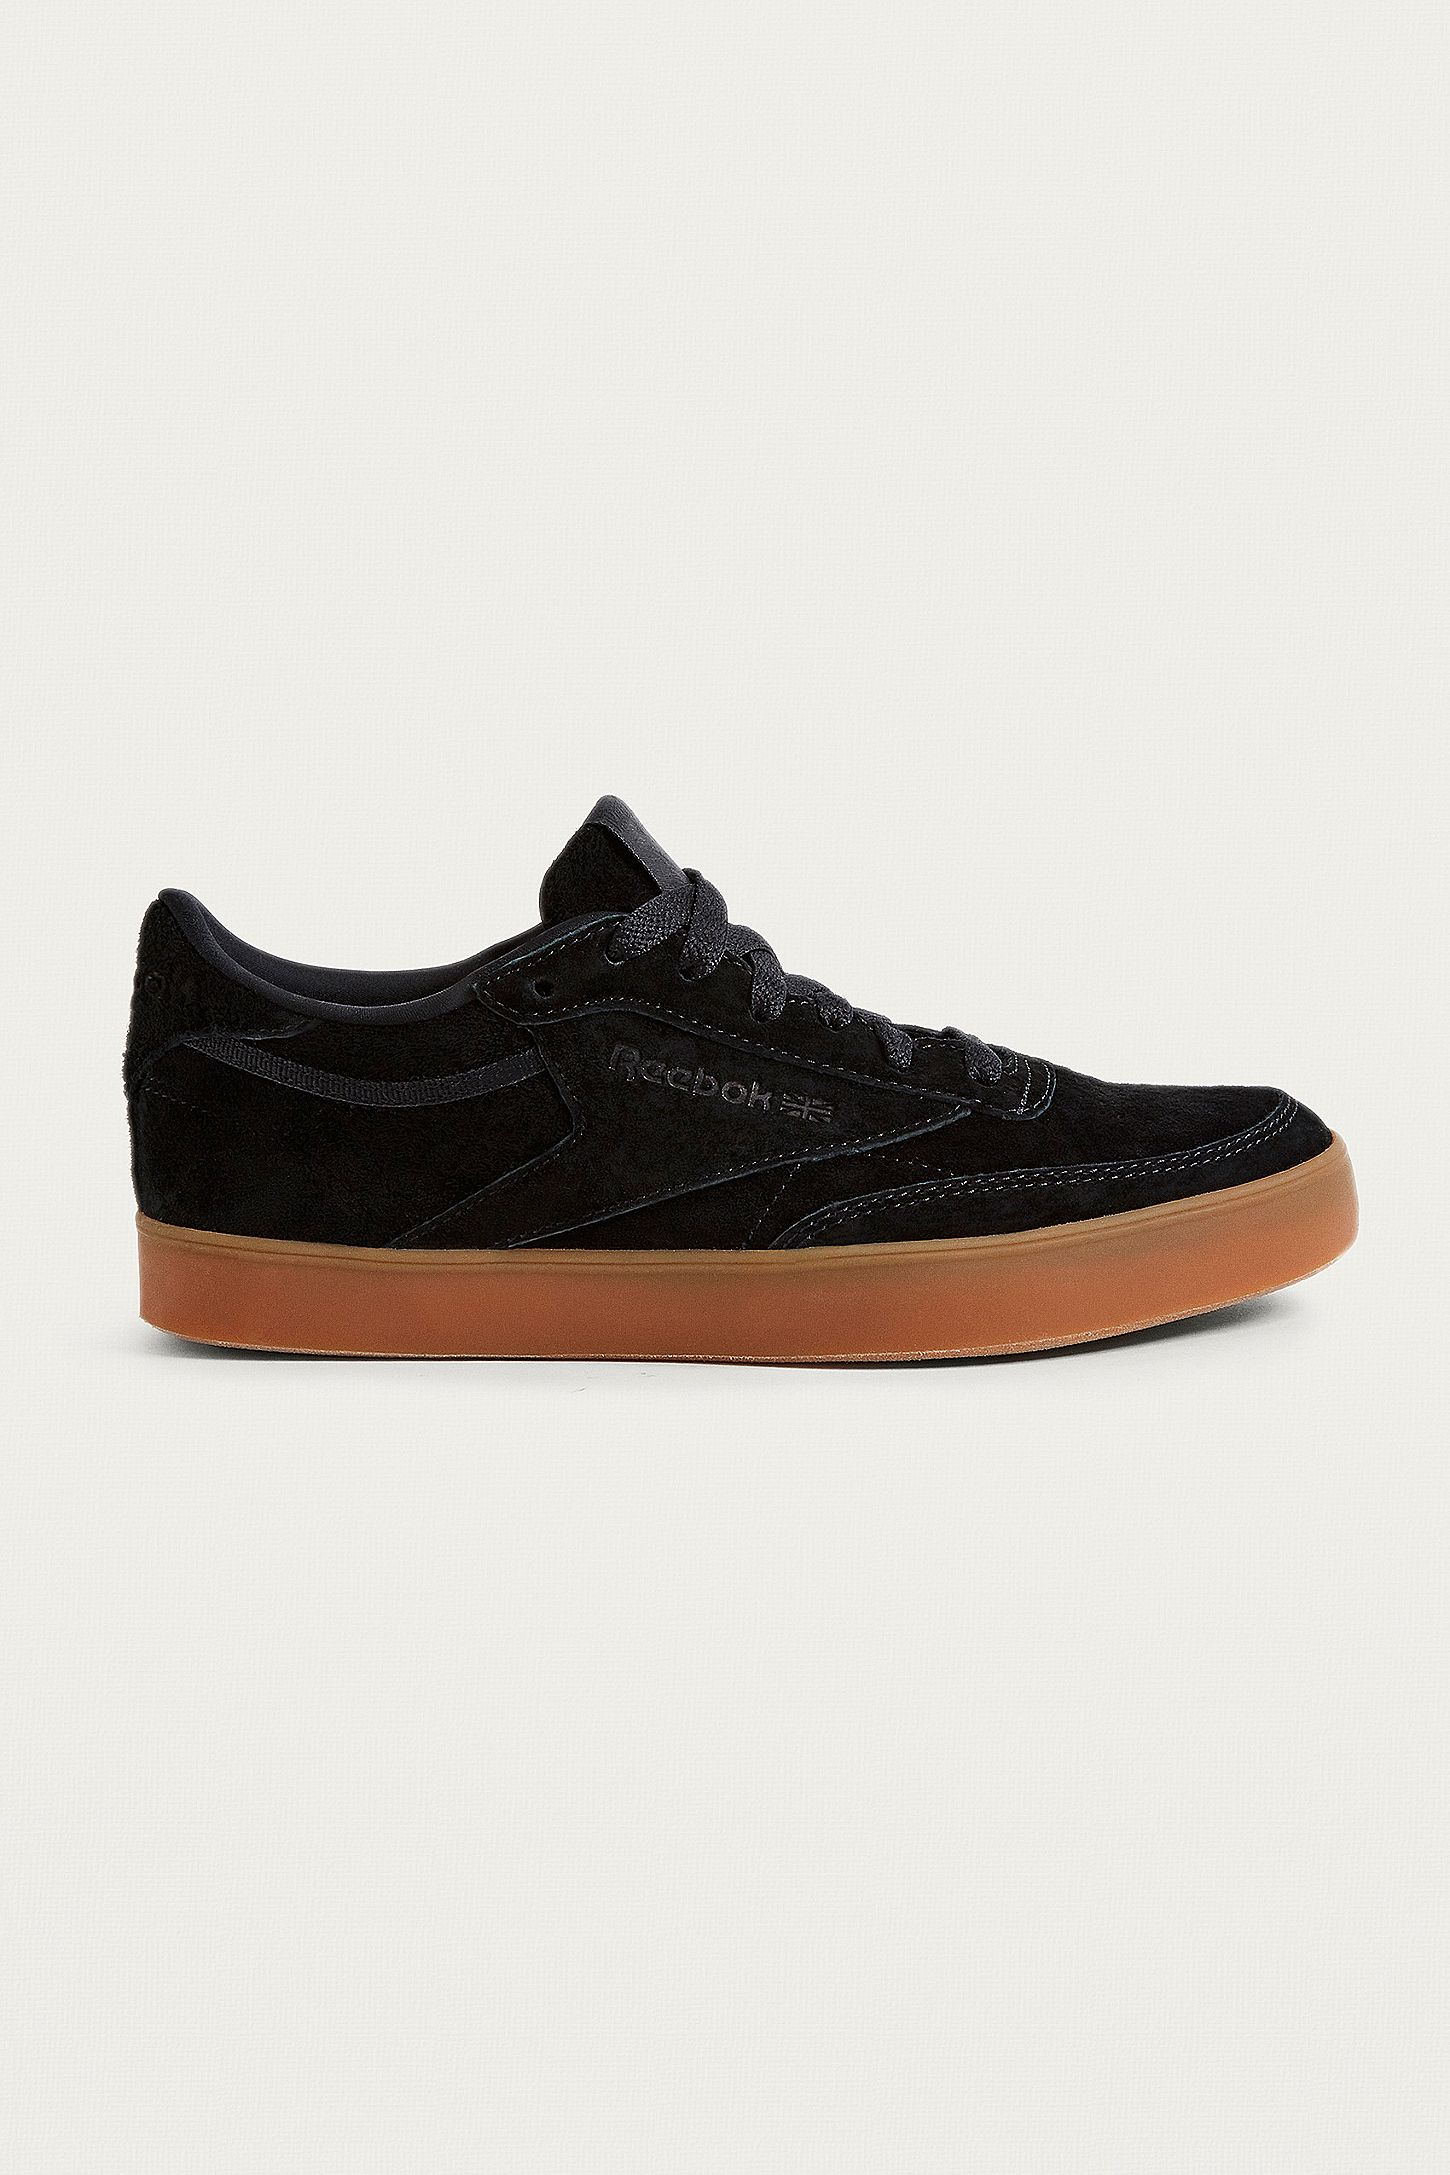 51e93f1318773 Reebok Club C 85 FVS Black Trainers. Click on image to zoom. Hover to zoom.  Double Tap to Zoom